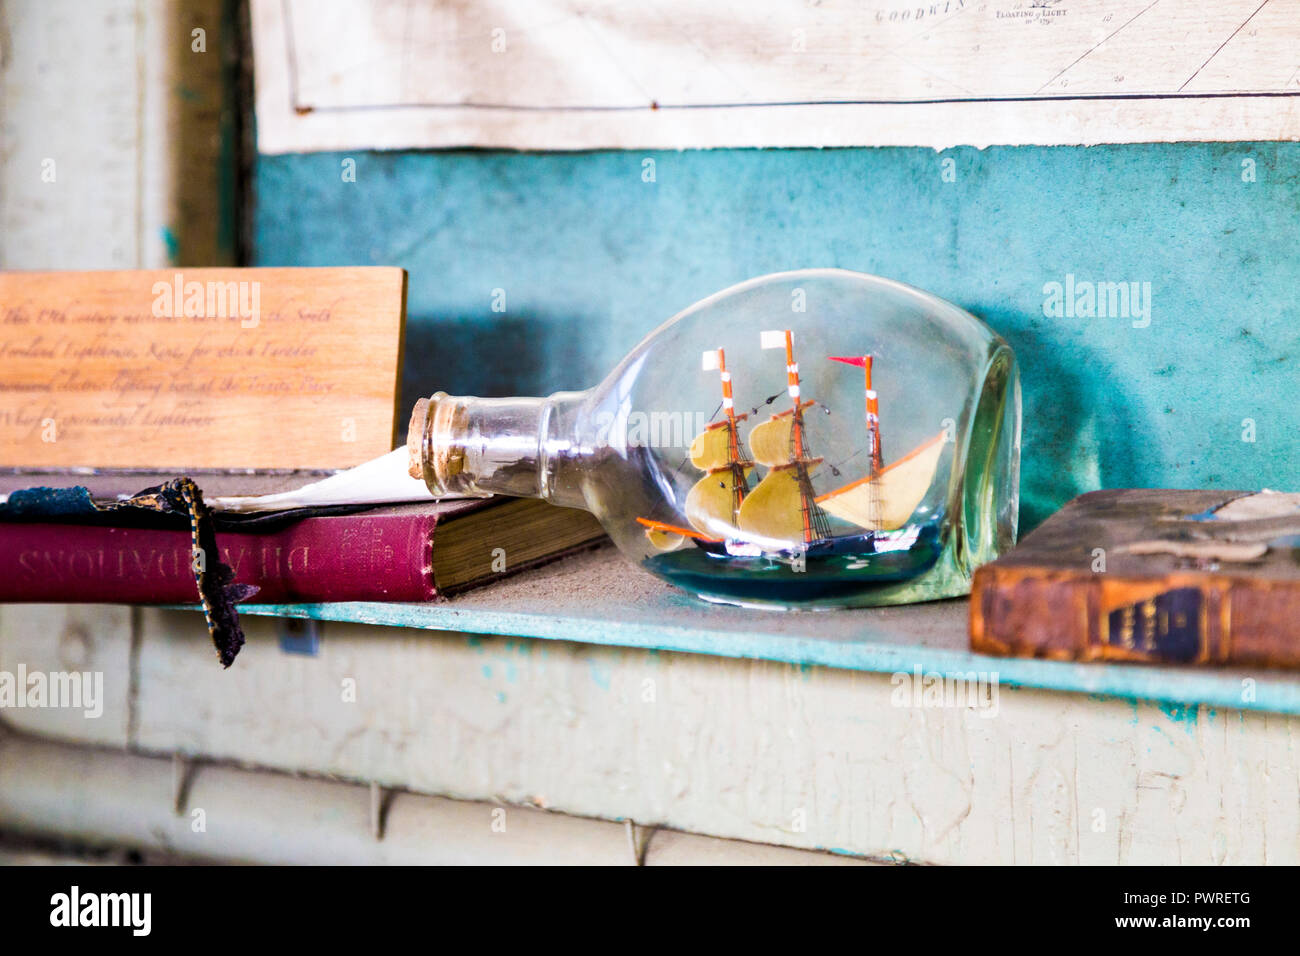 Interior of The Faraday Effect, smallest museum in London that documents the life and times of Michael Faraday, Trinity Buoy Wharf, London, UK - Stock Image